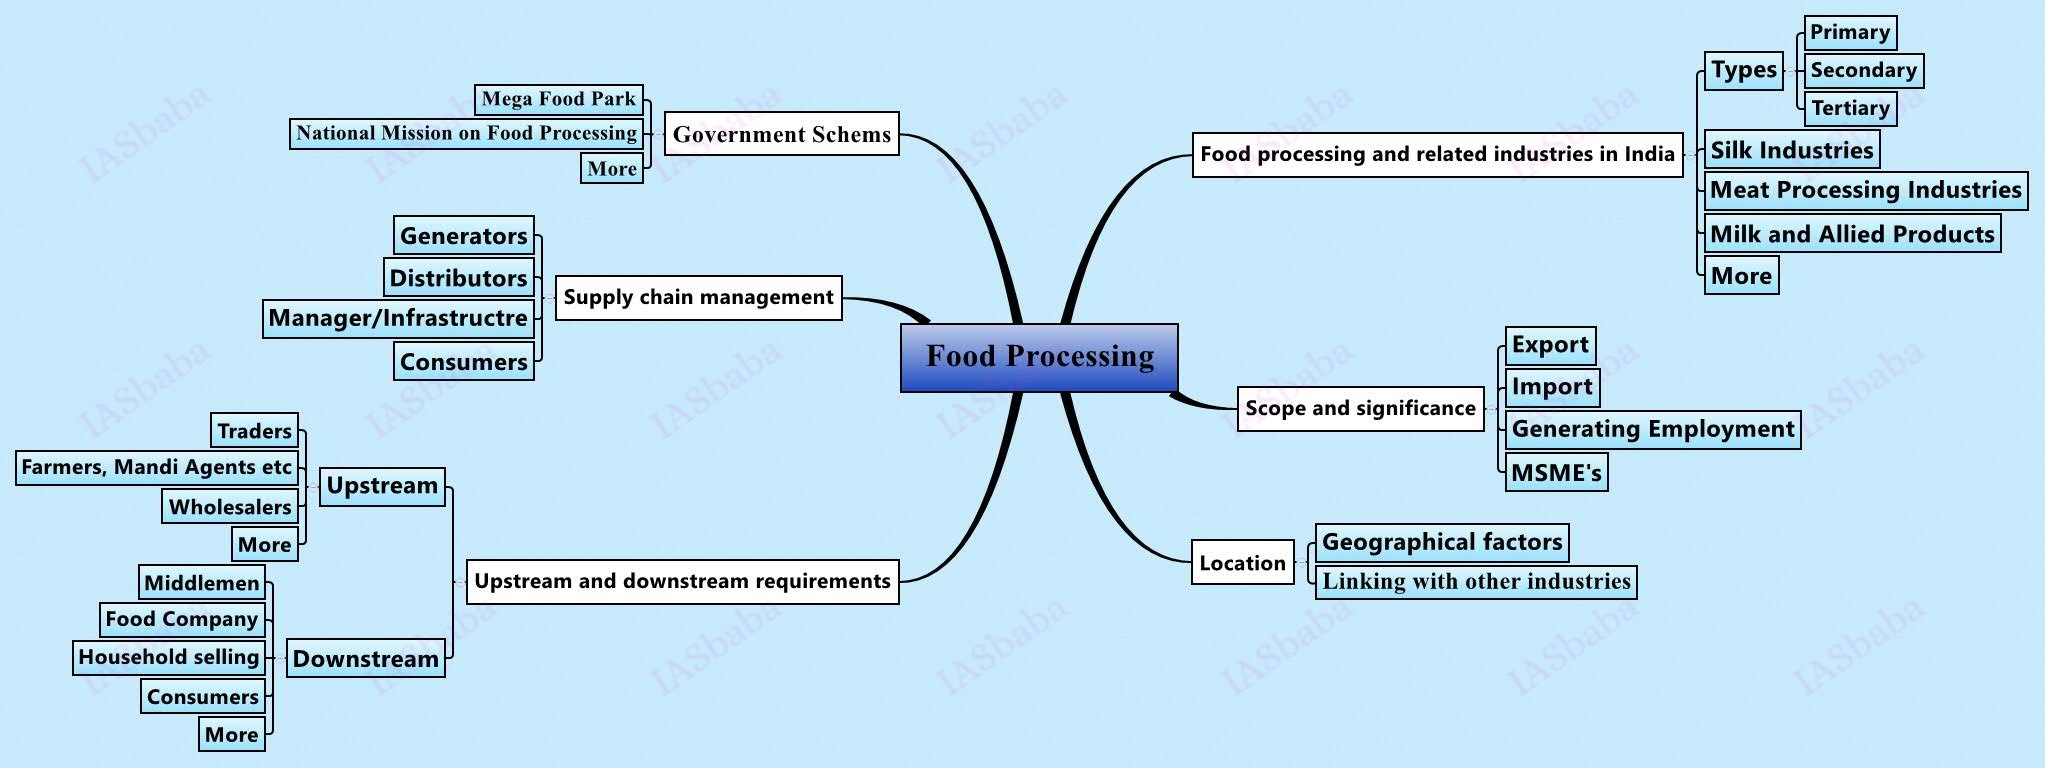 upsc civil services mains strategy paper iasbaba economics of animal rearing food processing and related industries in scope and significance location upstream and downstream requirements